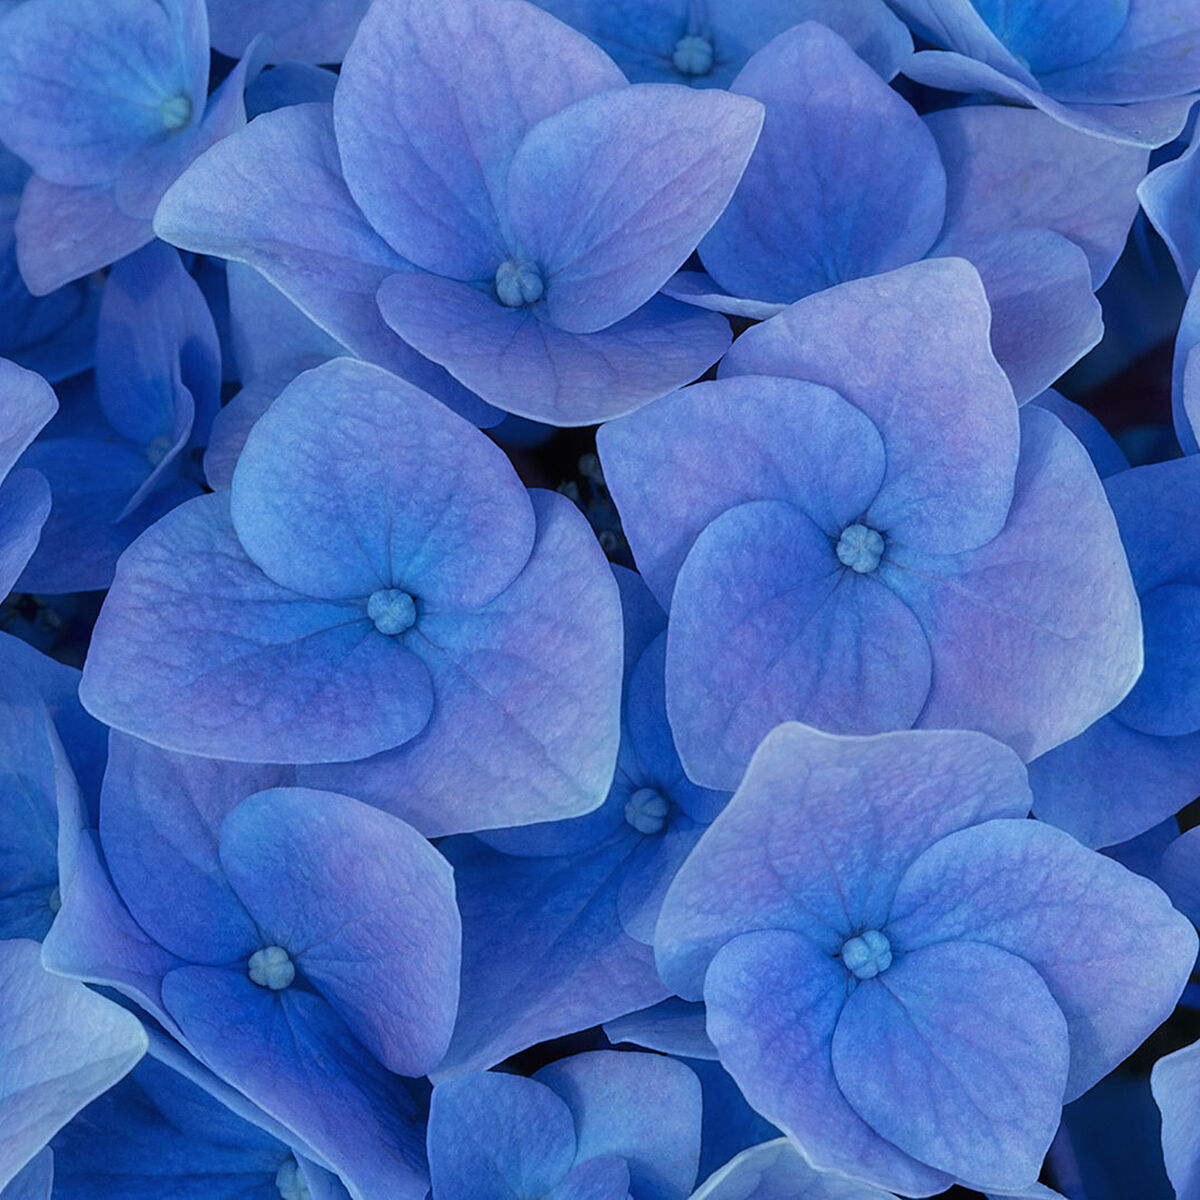 A photograph of delicate blue hydrangia titled Fragile.